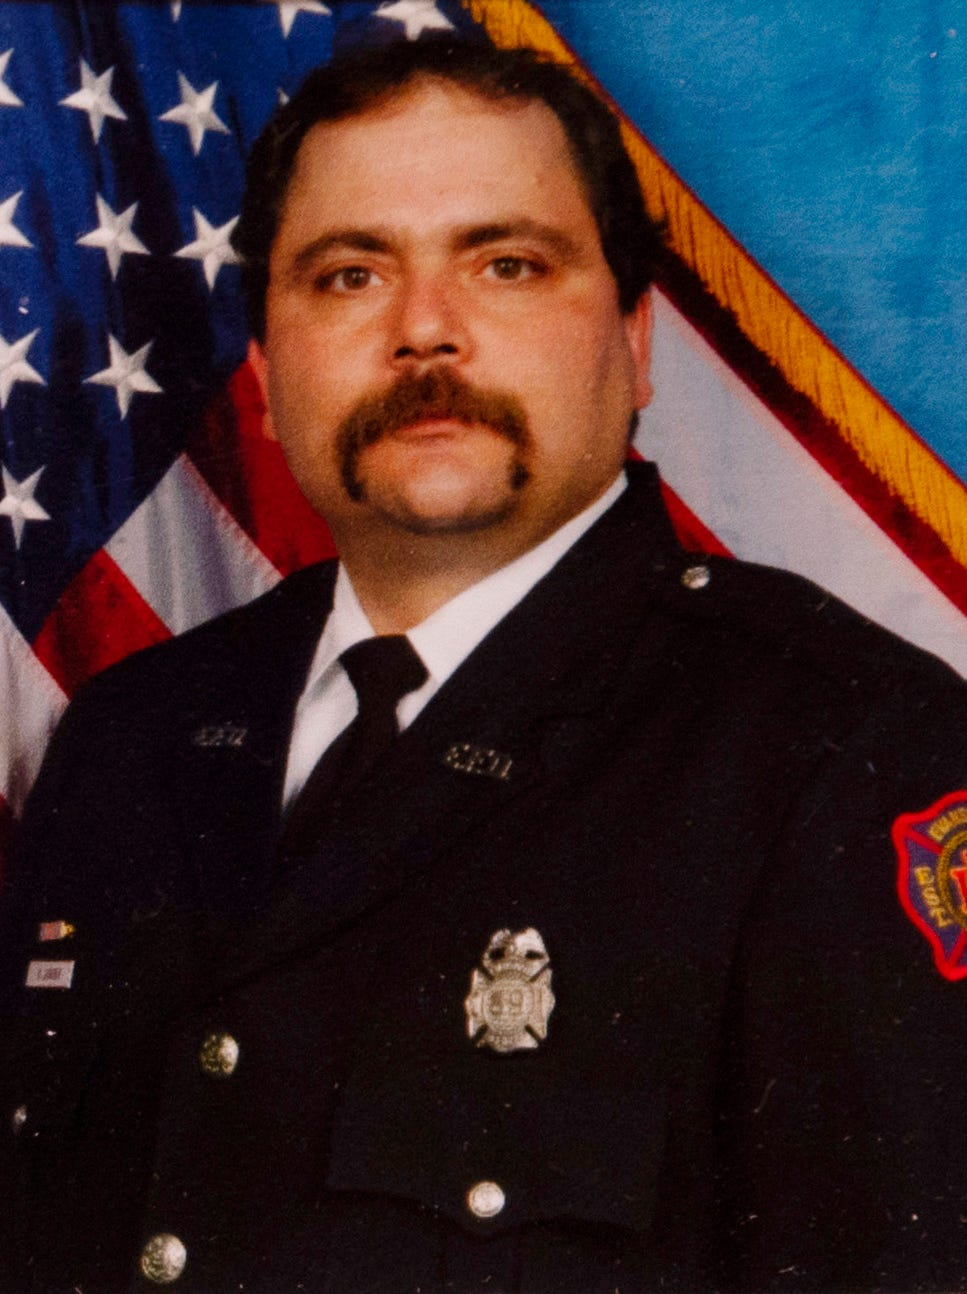 'My brother that I never really had': Firefighter, police officer react to  shooting death